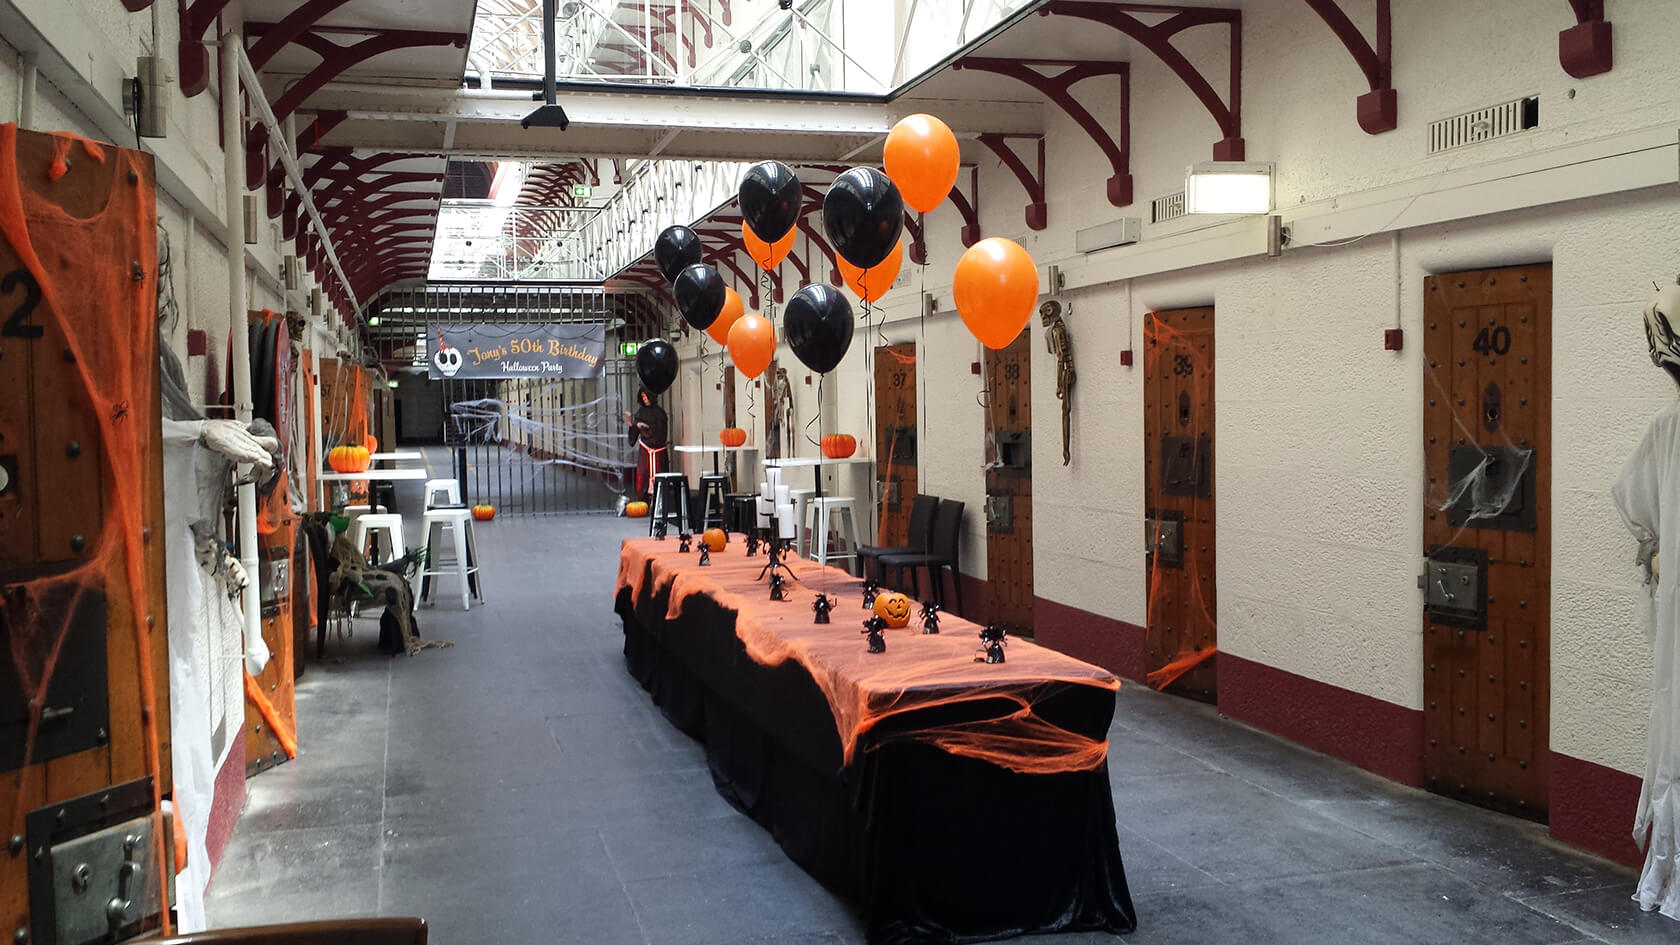 CE-34 - corporate - stunning decor balloons for event - shivoo balloons and decor specialists in coburg north